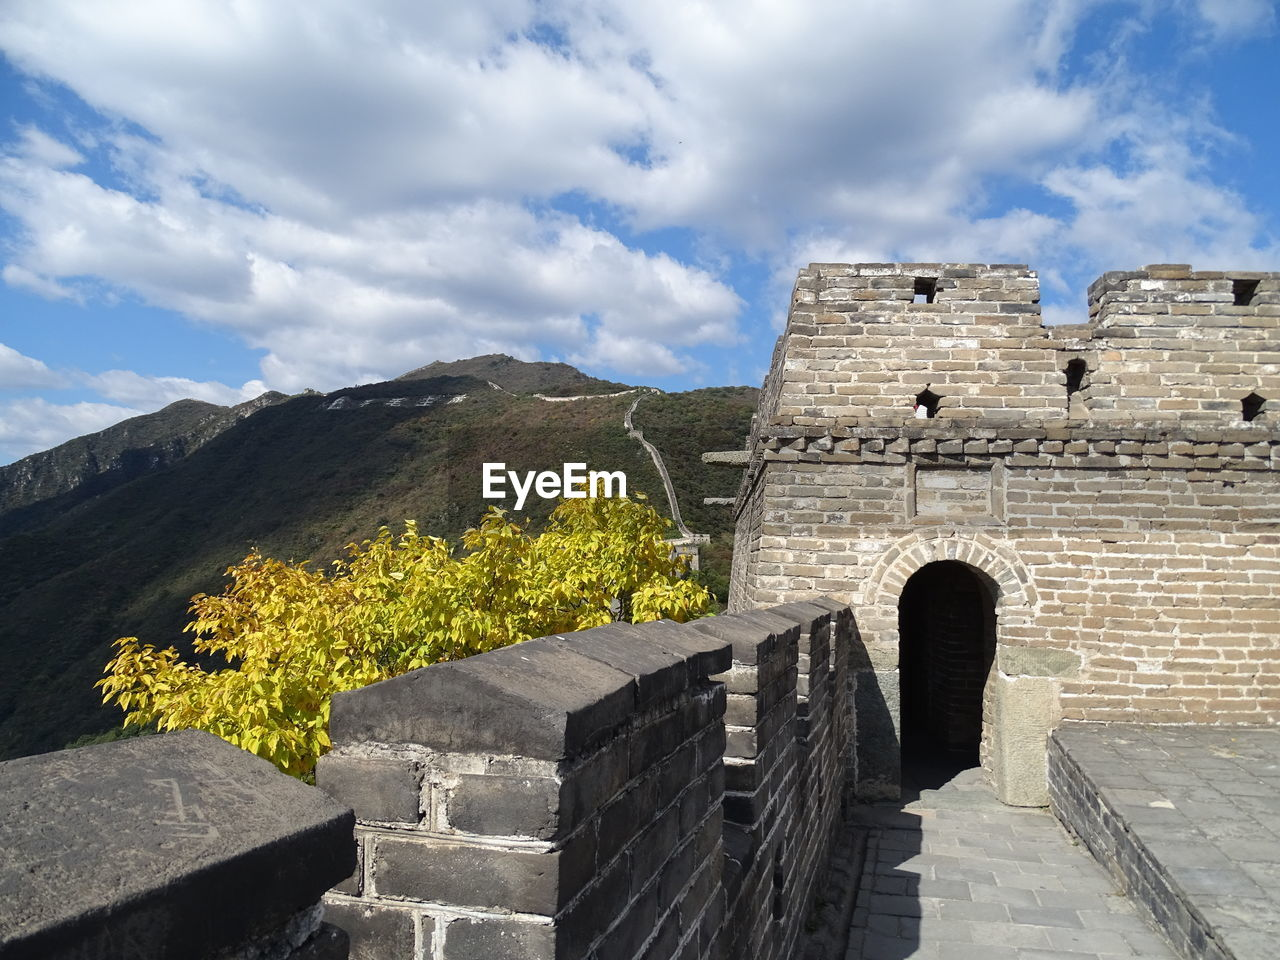 history, architecture, the past, sky, built structure, cloud - sky, nature, travel destinations, ancient, tourism, day, mountain, travel, beauty in nature, staircase, building exterior, no people, ancient civilization, scenics - nature, outdoors, stone wall